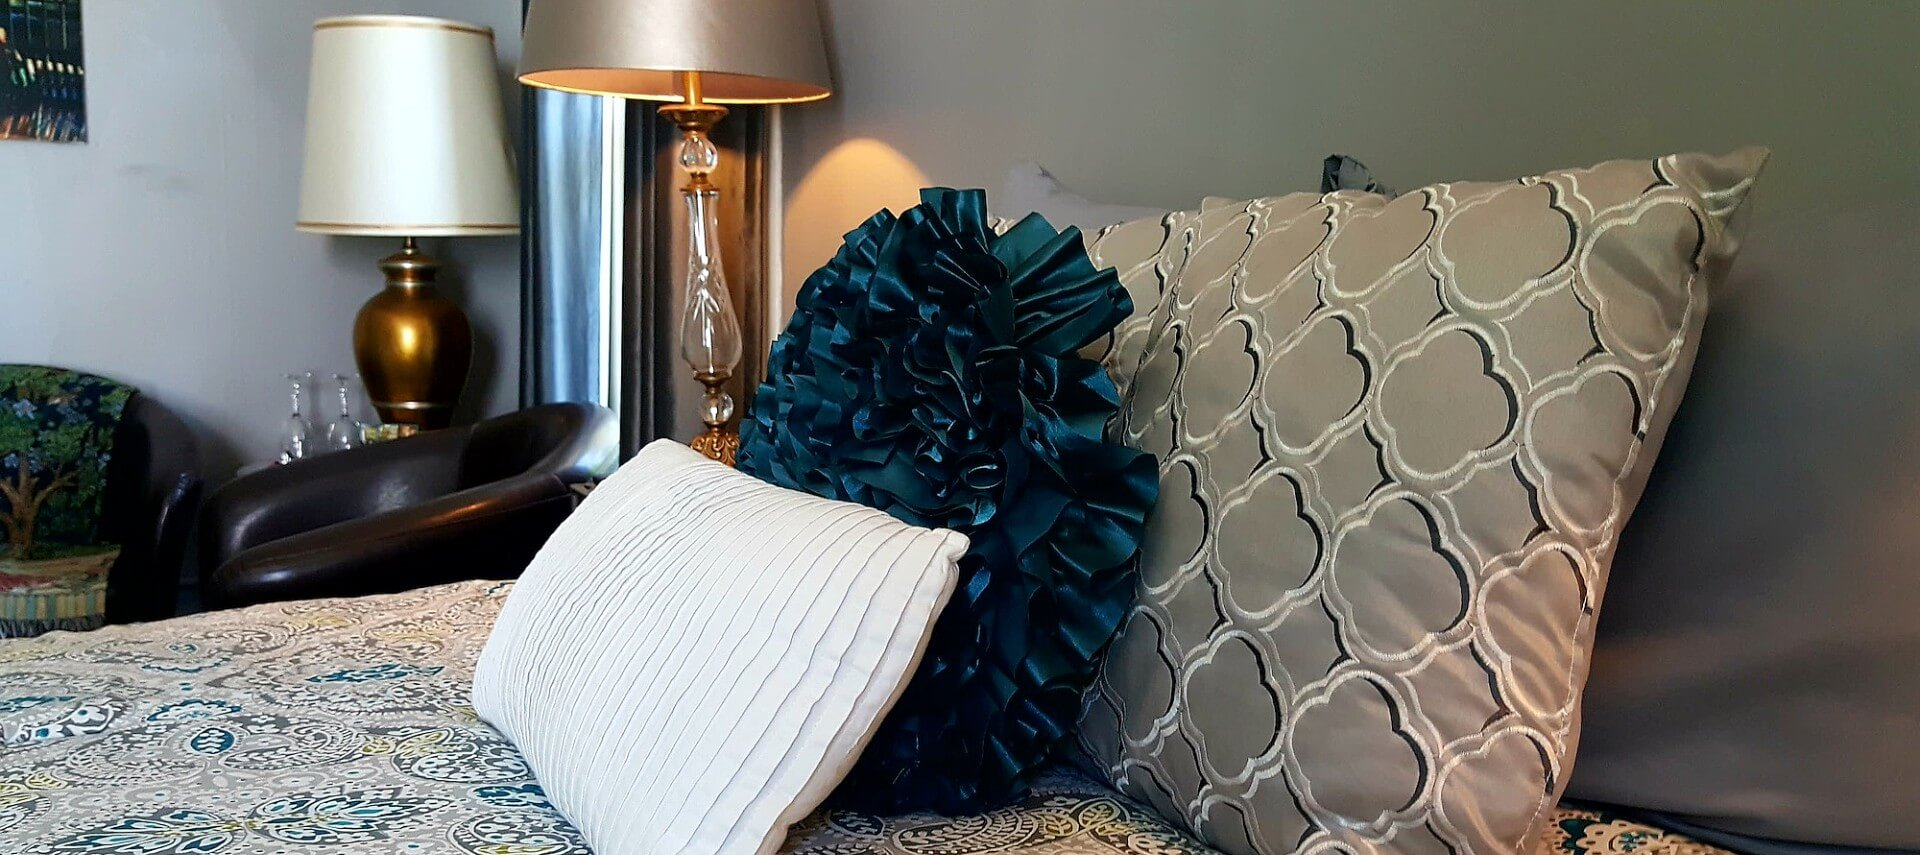 Bed made up with tan and teal paisley spread and decorative pillows next to a nightstand and leather club chair.